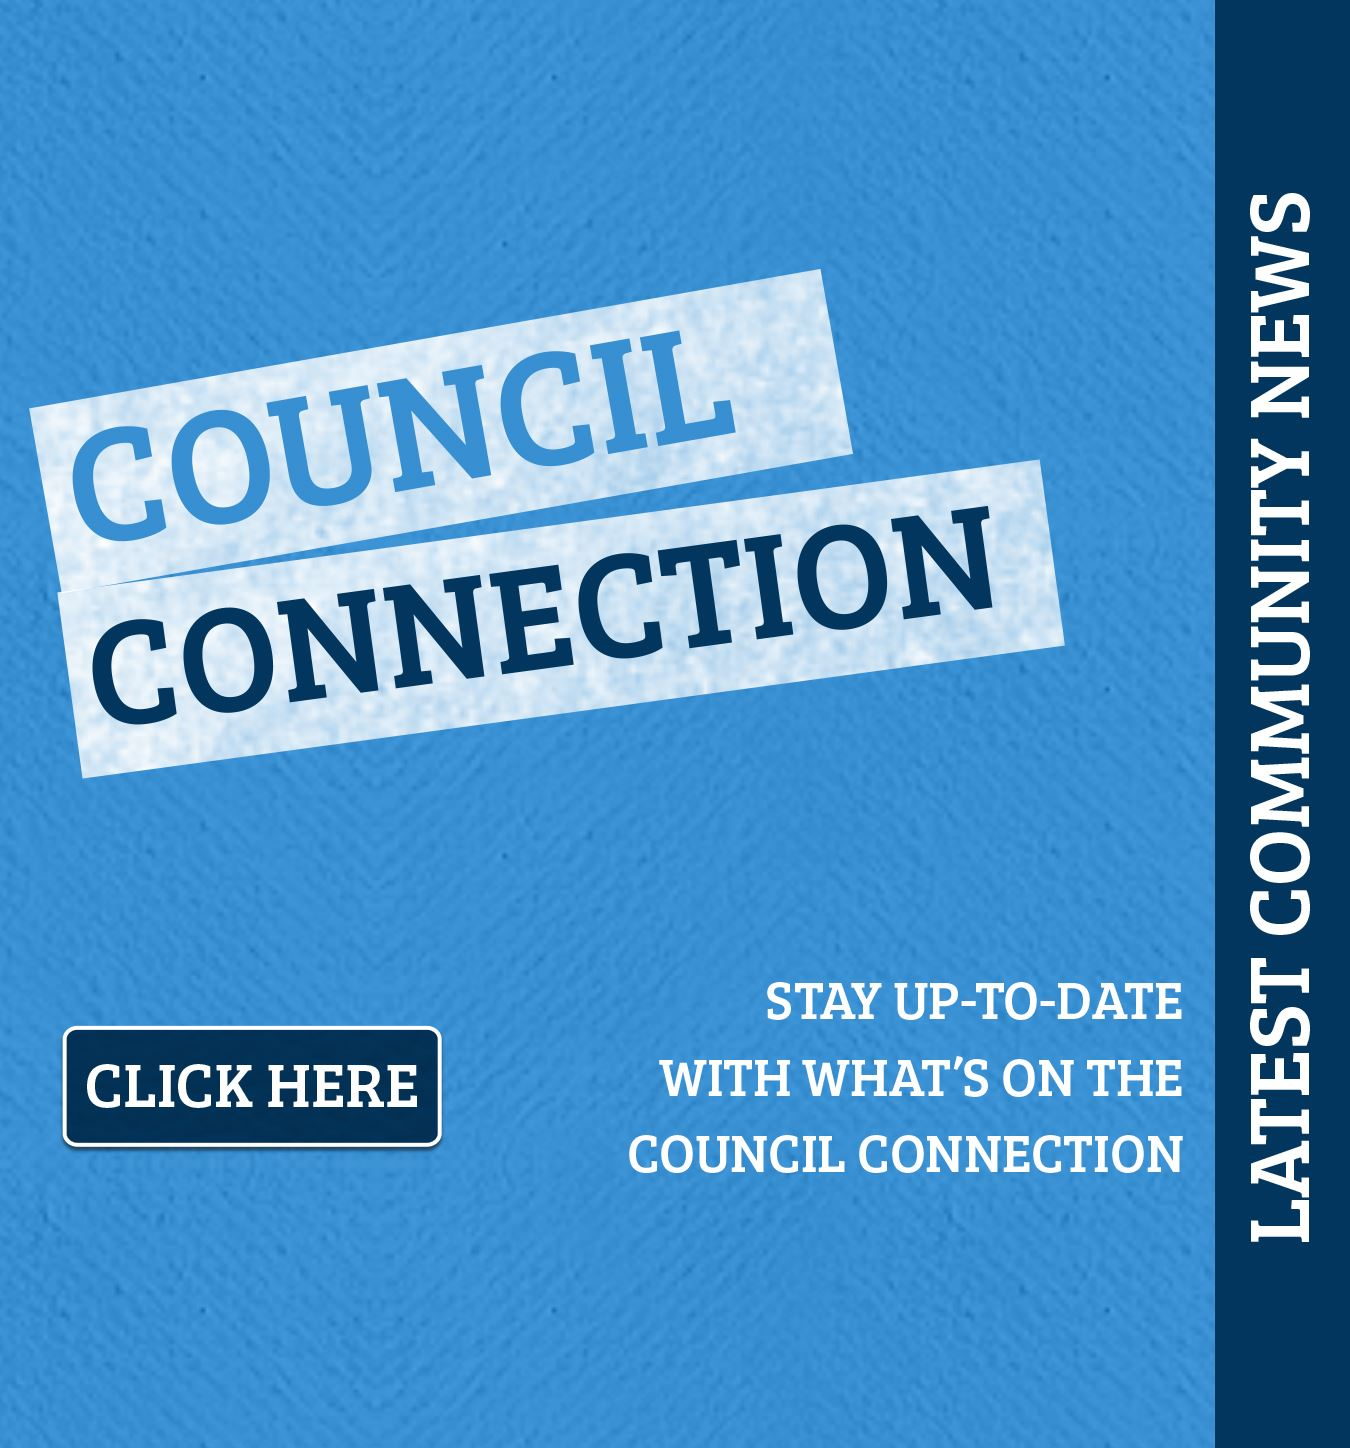 Council Connection